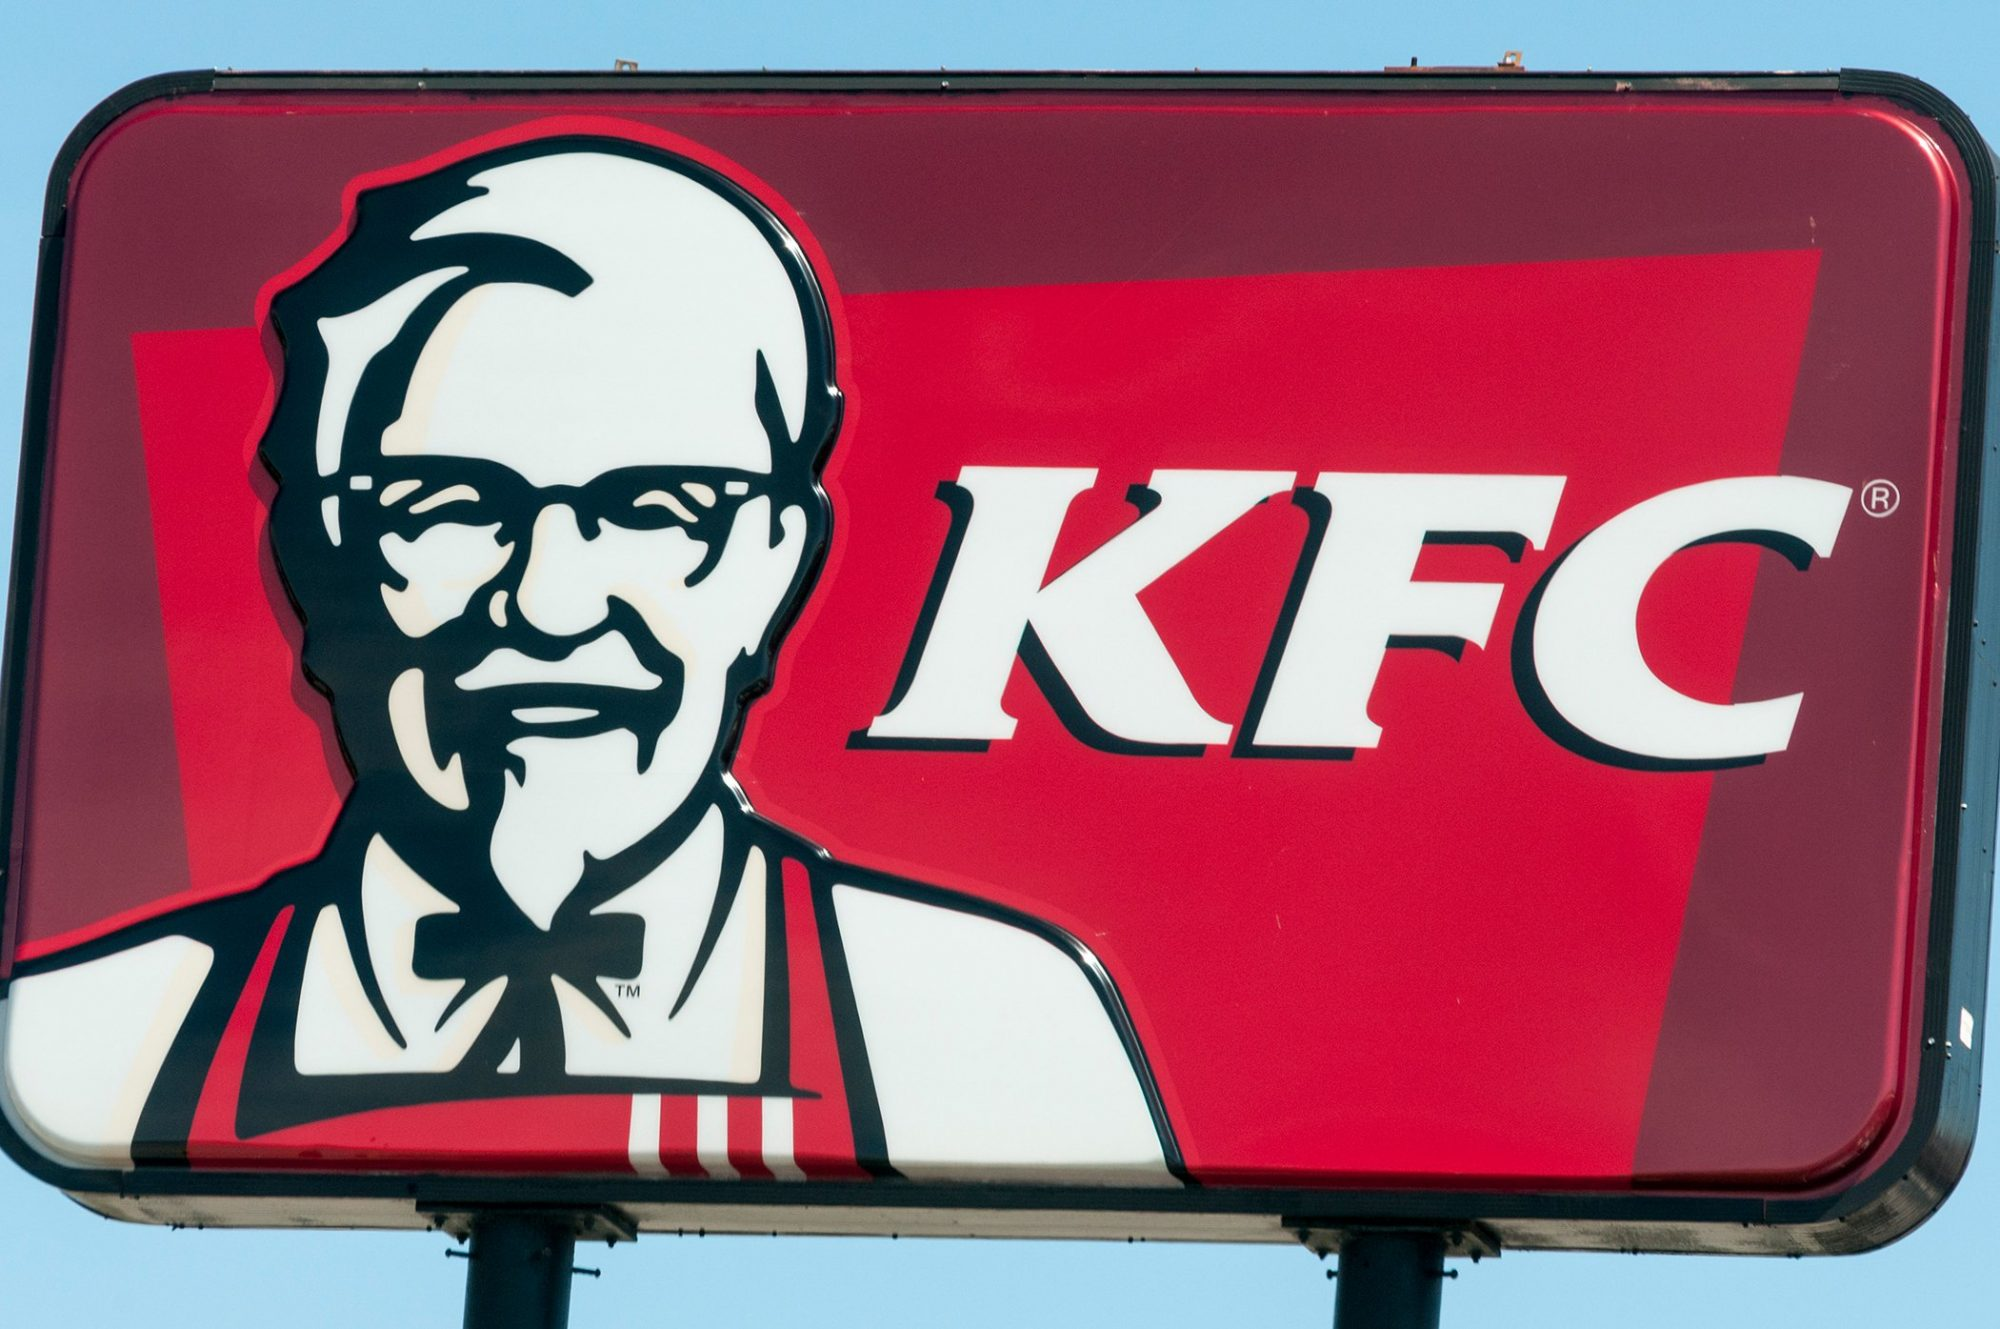 Kentucky Fried Chicken KFC fast food restaurant sign